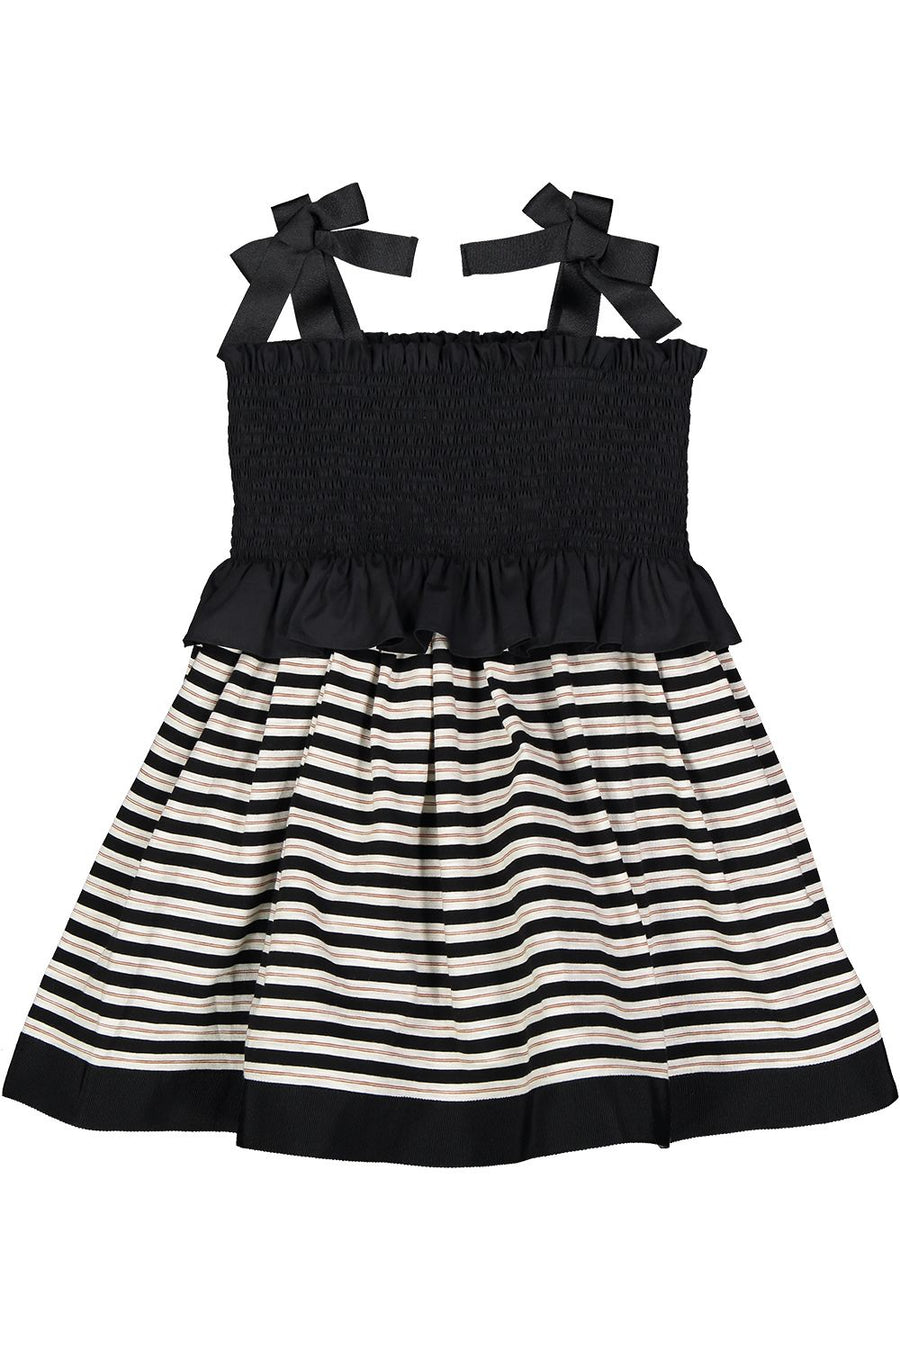 Black Striped Dress (Short Length) by Mimisol